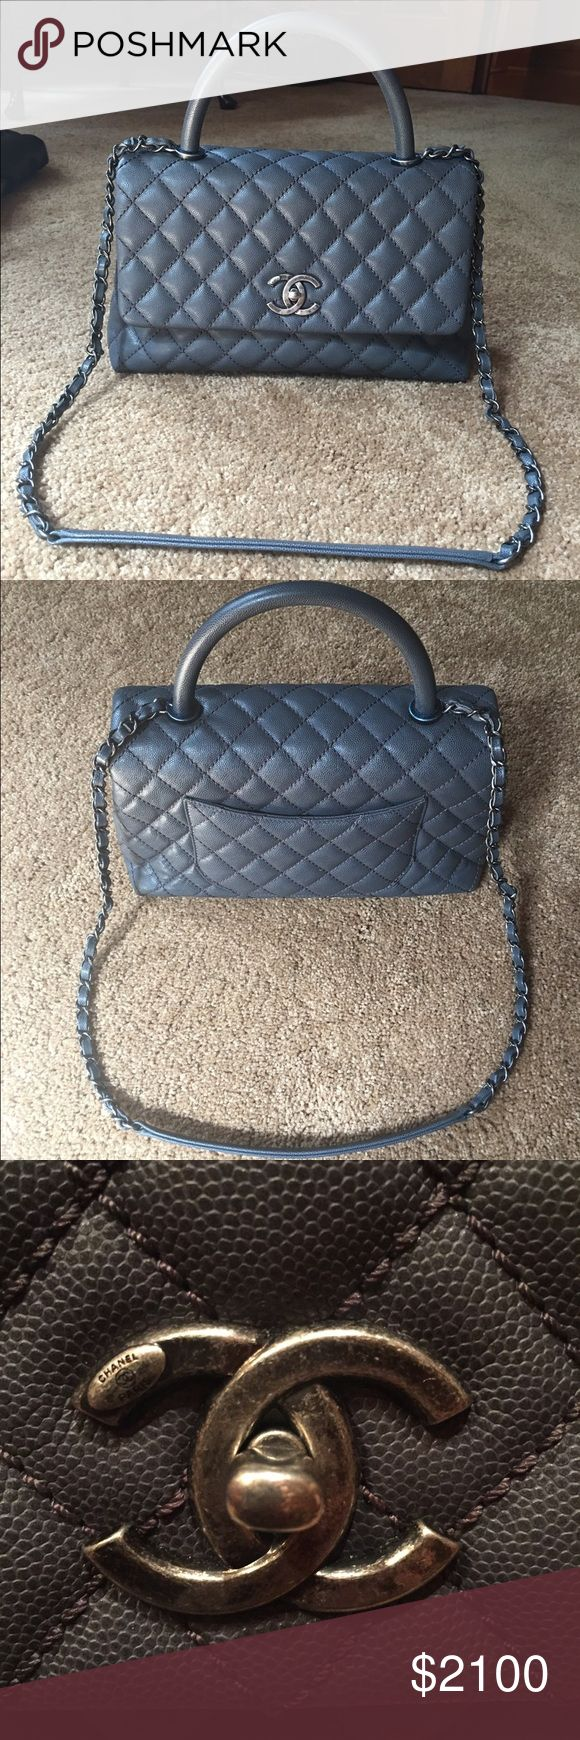 """Auth Chanel Coco Caviar Kelly Grey Flap Bag $4100 Like new! 100% Authentic Chanel Flapbag Grey quilted caviar leather with Coco handle- serial number: 21533839- short handle and long chain handle- turn lock closure- exterior pocket- 2 interior zip pockets- bag measures approx: 11"""" across X 8"""" tall X 4.5"""" deep-stunning bag!! CHANEL Bags Shoulder Bags"""